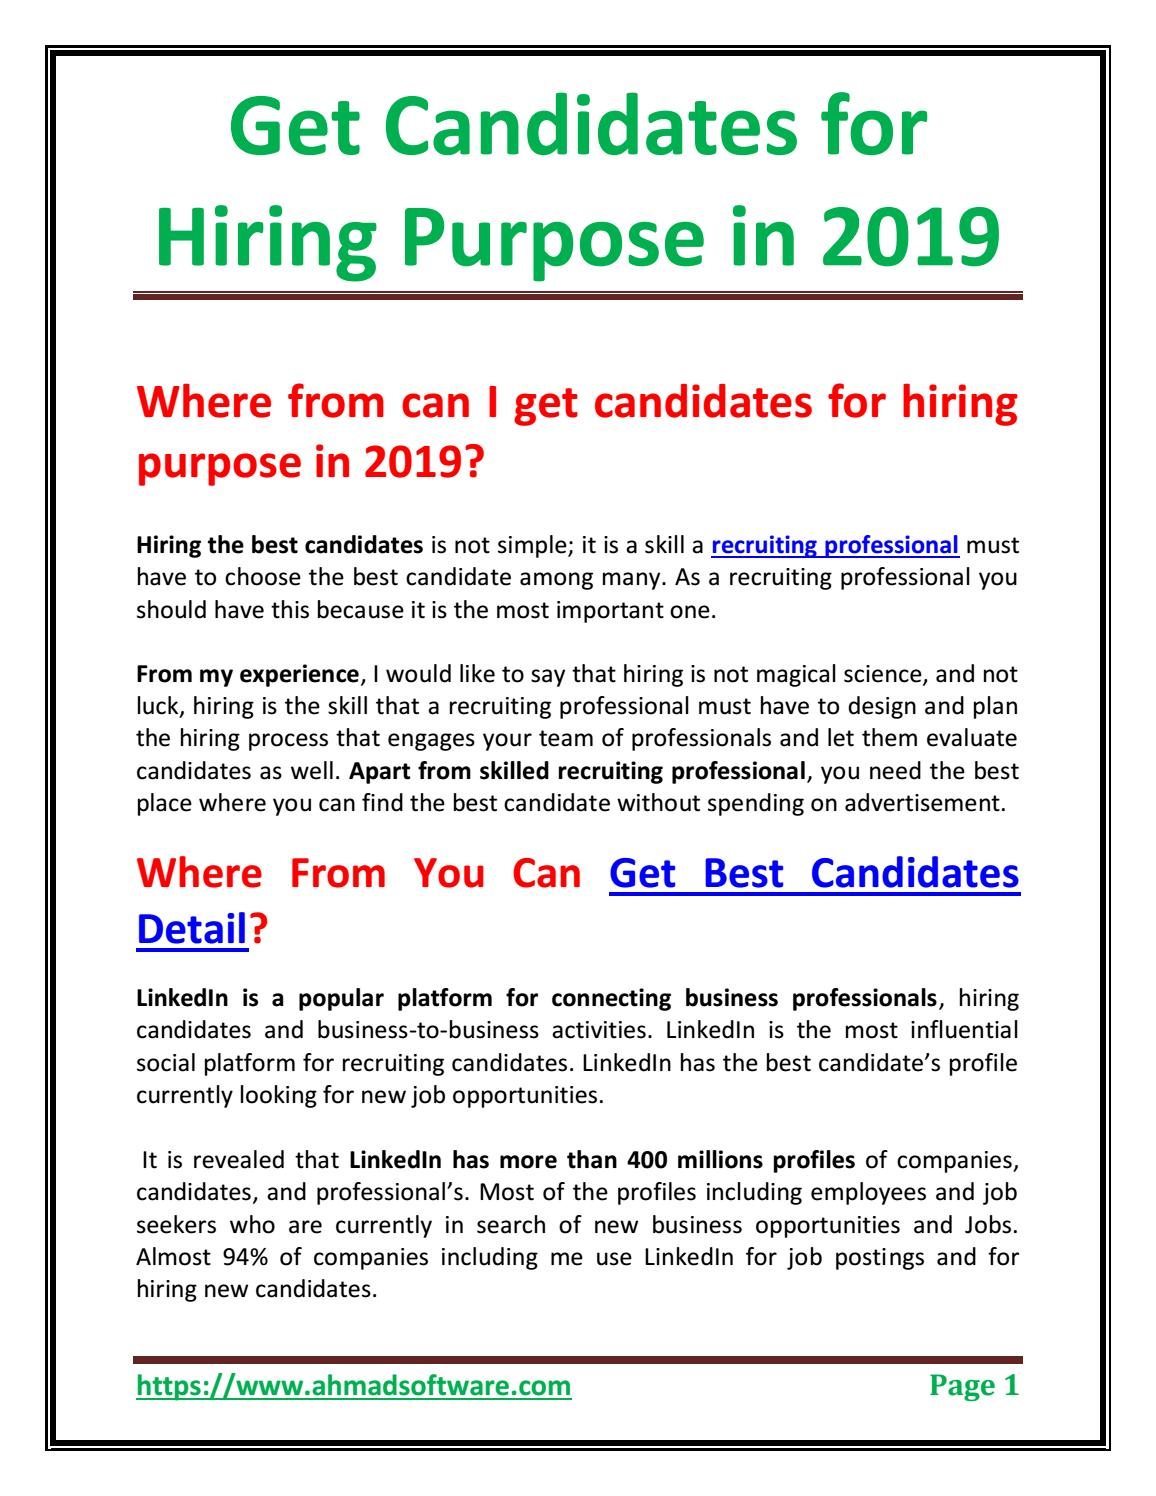 Get Candidates Detail for Hiring Purpose in 2019 by Ahmad